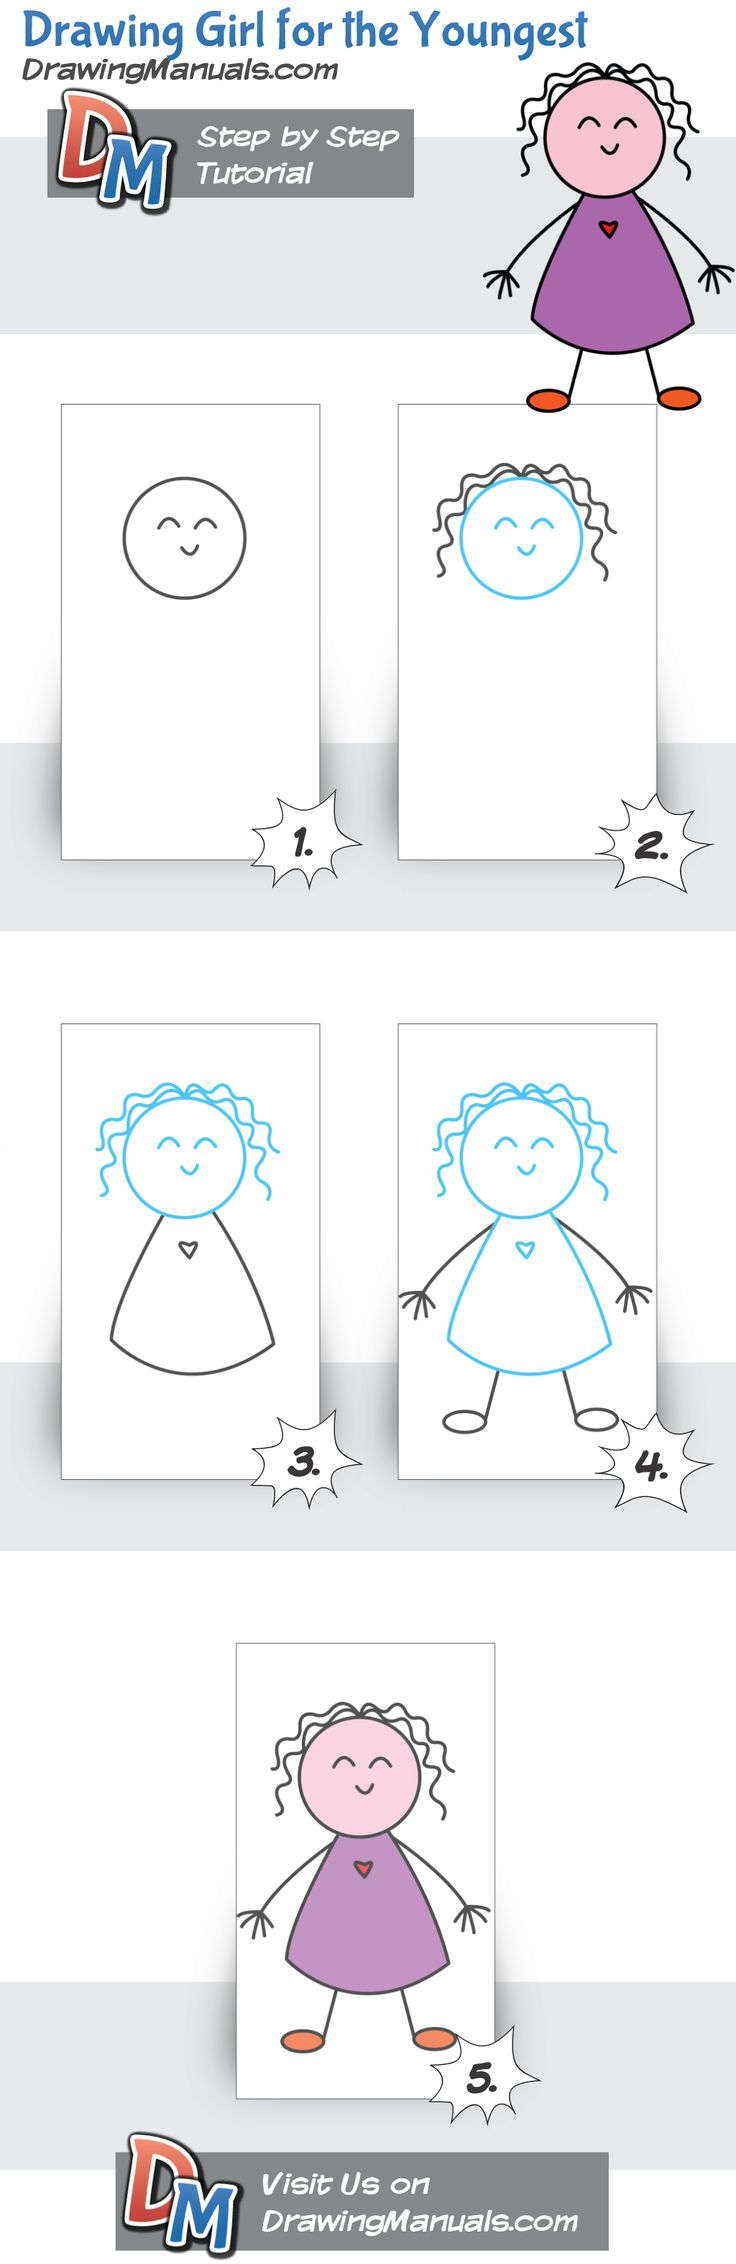 Drawing Girl for the Youngest http://drawingmanuals.com/manual/drawing-girl-for-the-youngest/